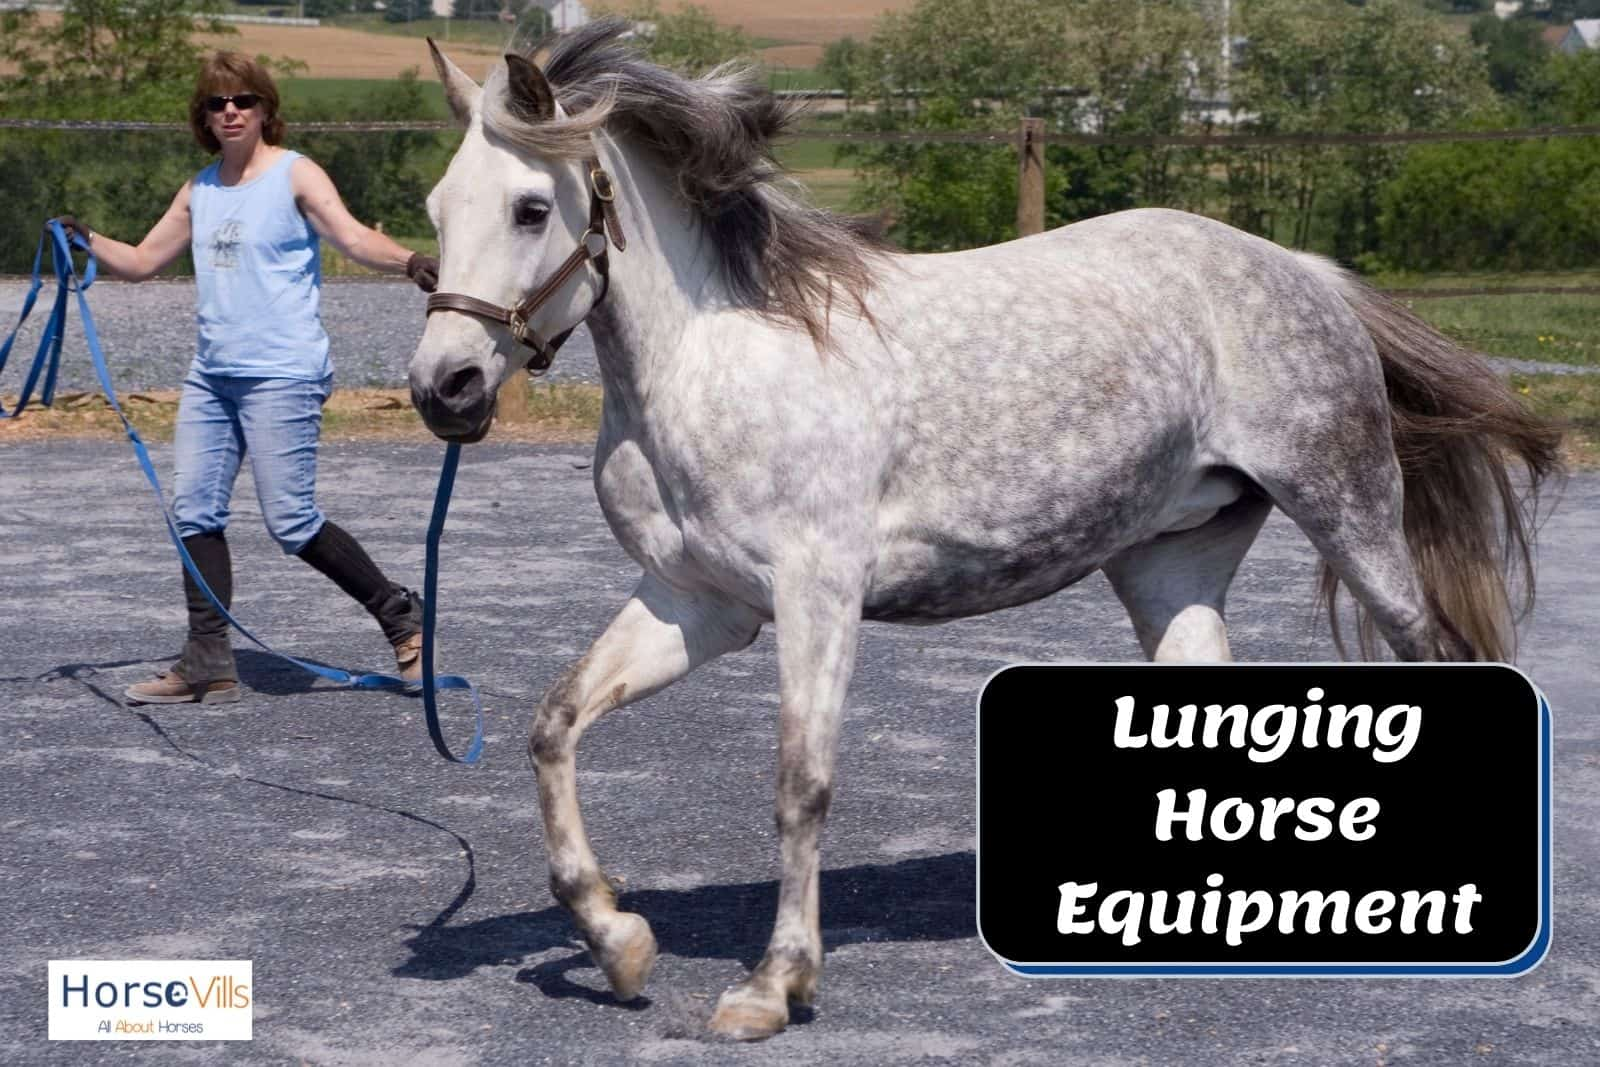 a lady using lunging horse equipment and demonstrating on how to use them